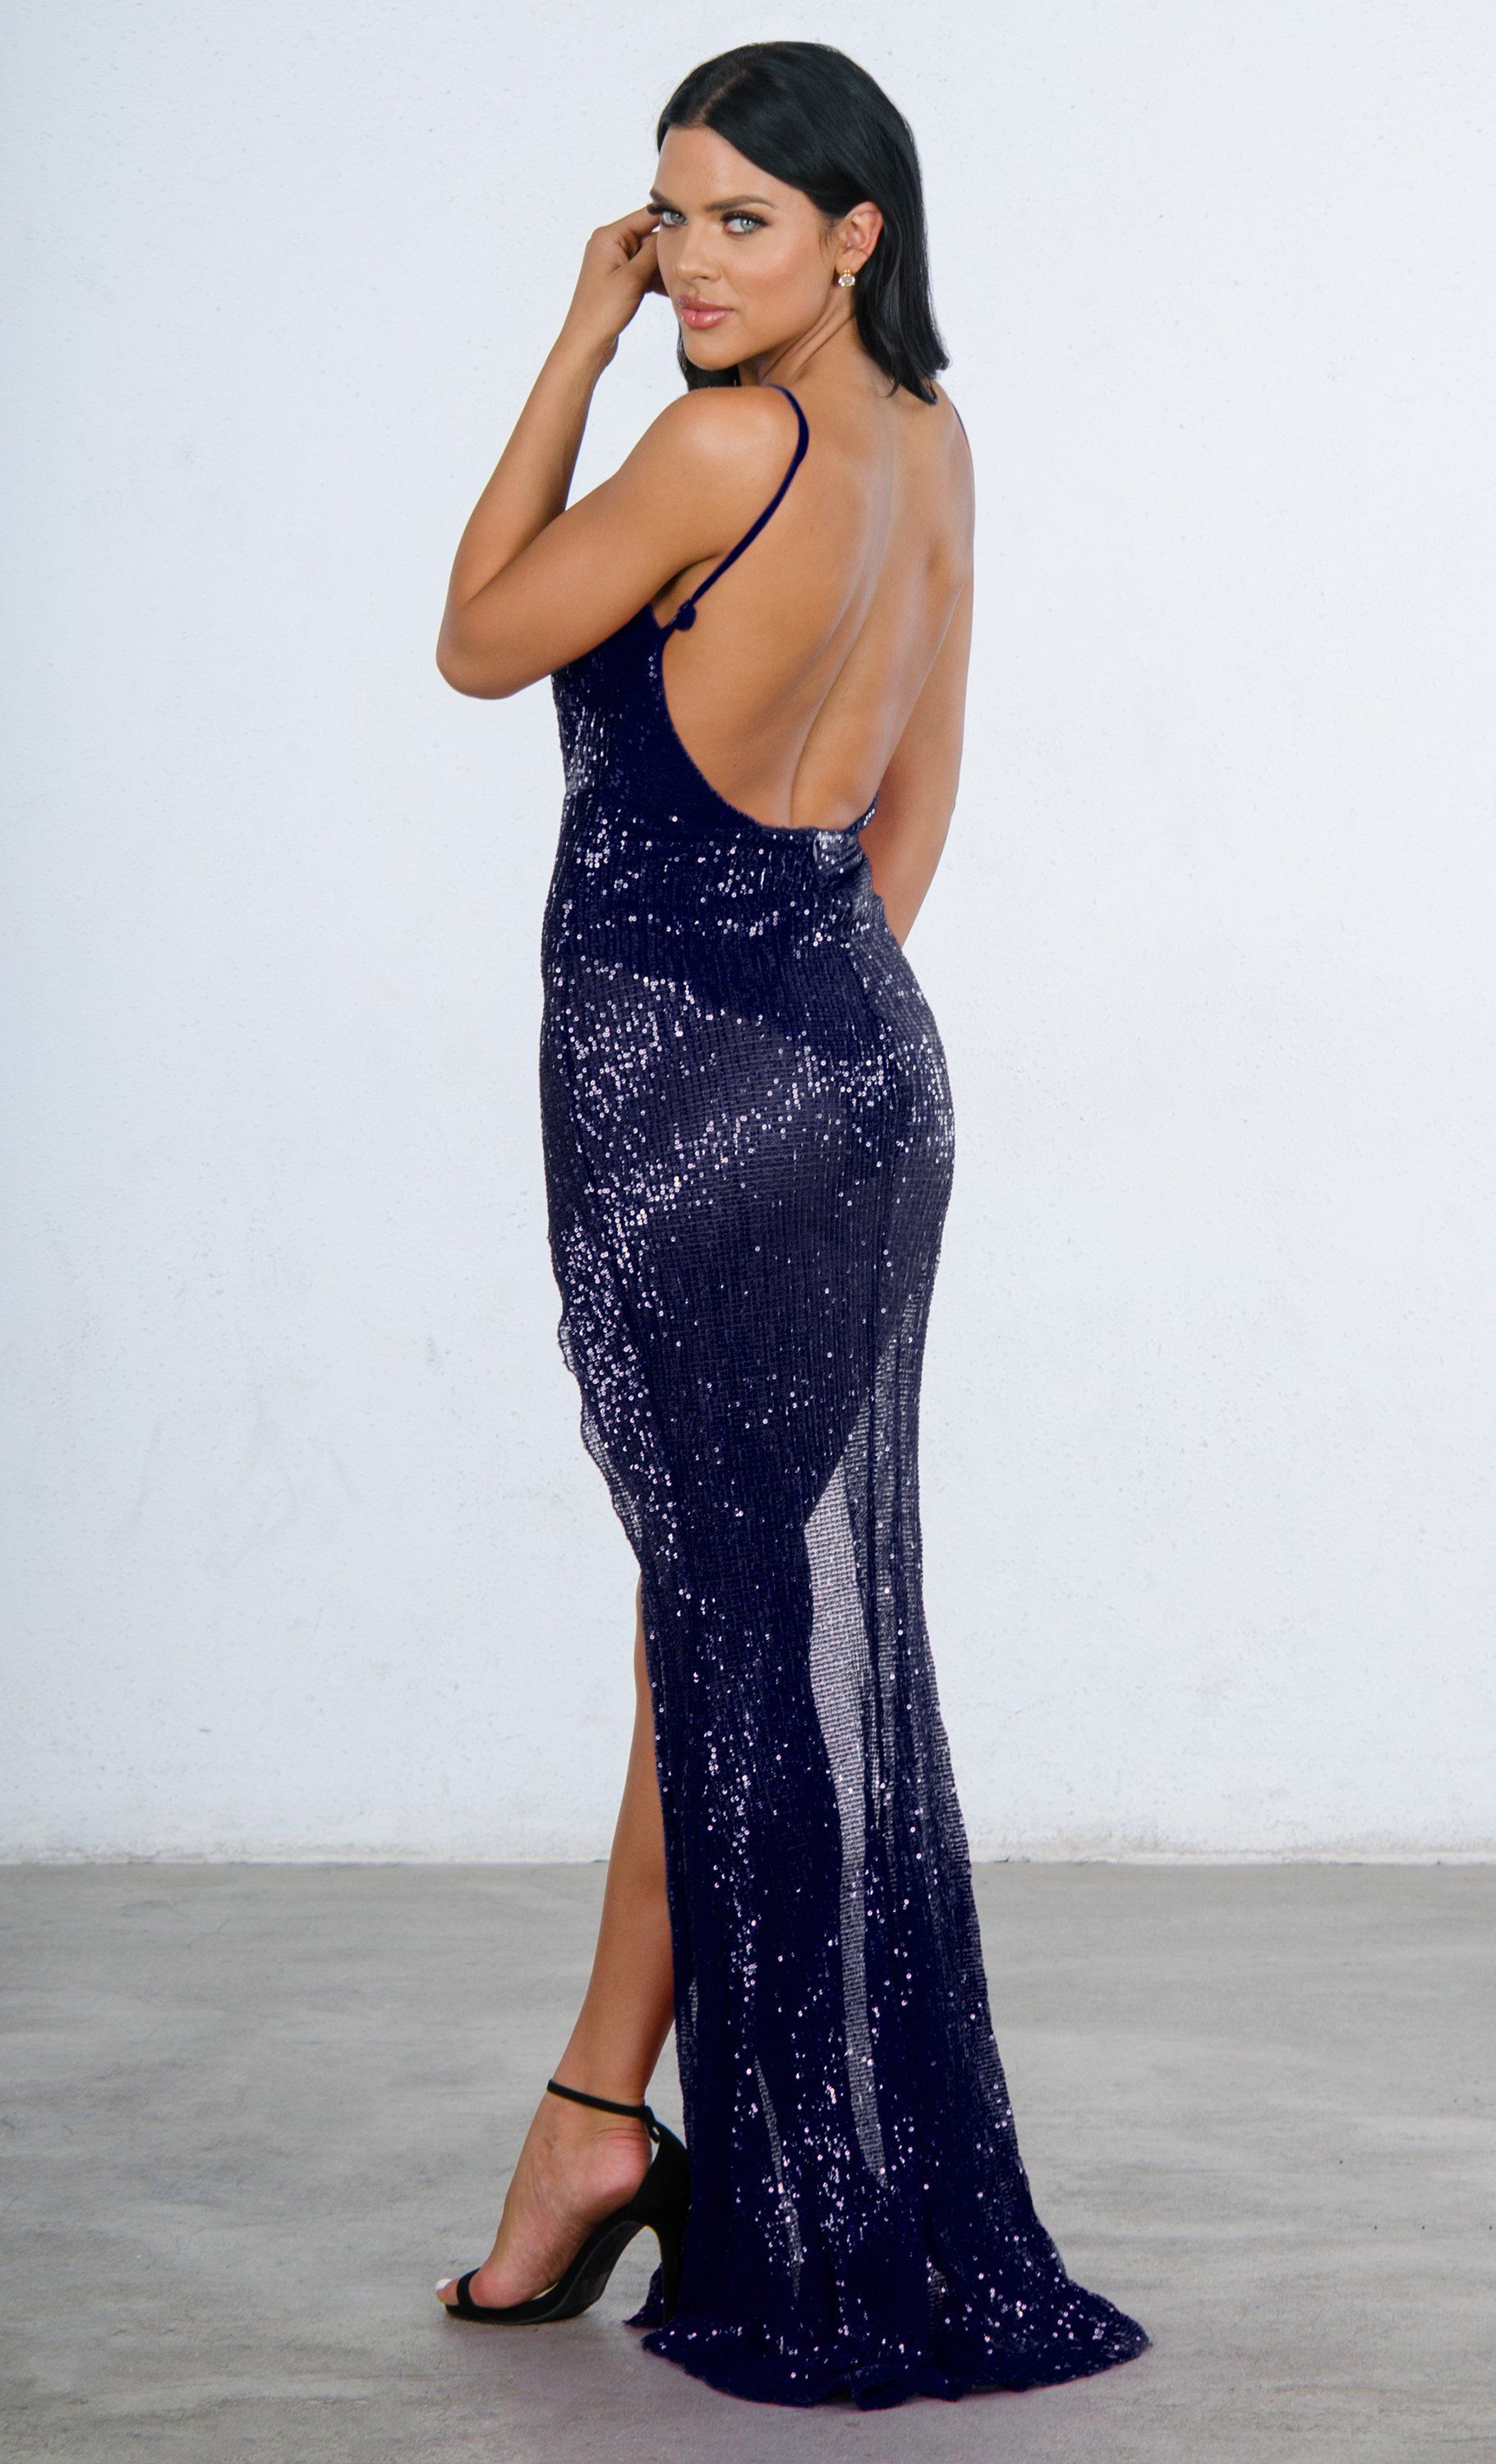 290221f3575 Indie XO Mystery Girl Blue Sequin Sleeveless Spaghetti Strap Plunge V